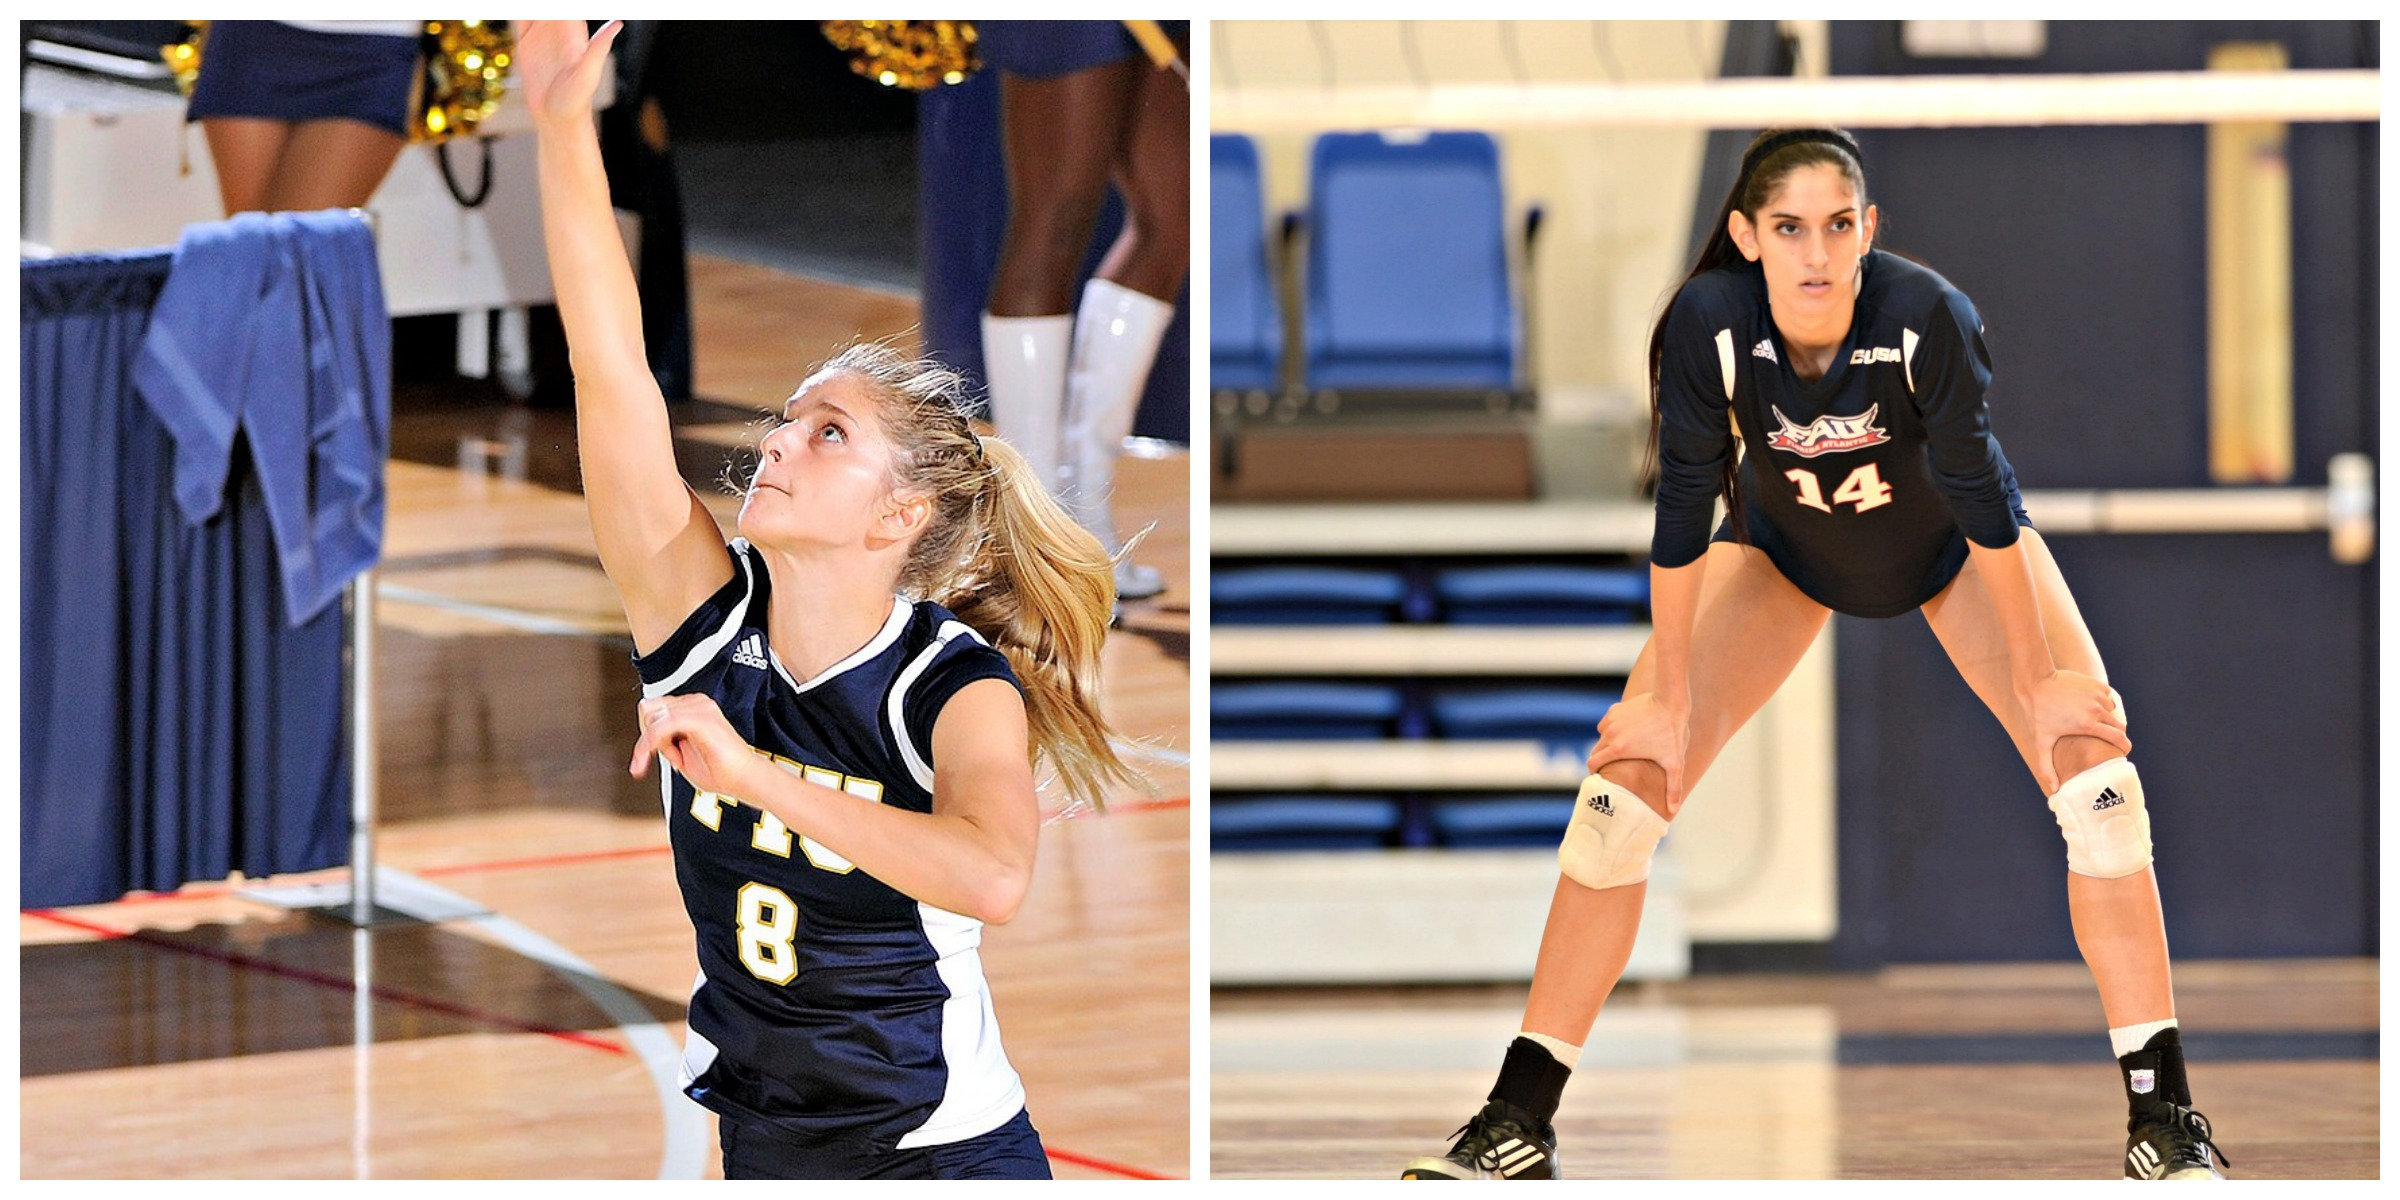 Volleyball sisters on opposite sides of court in FIU vs. Florida Atlantic match